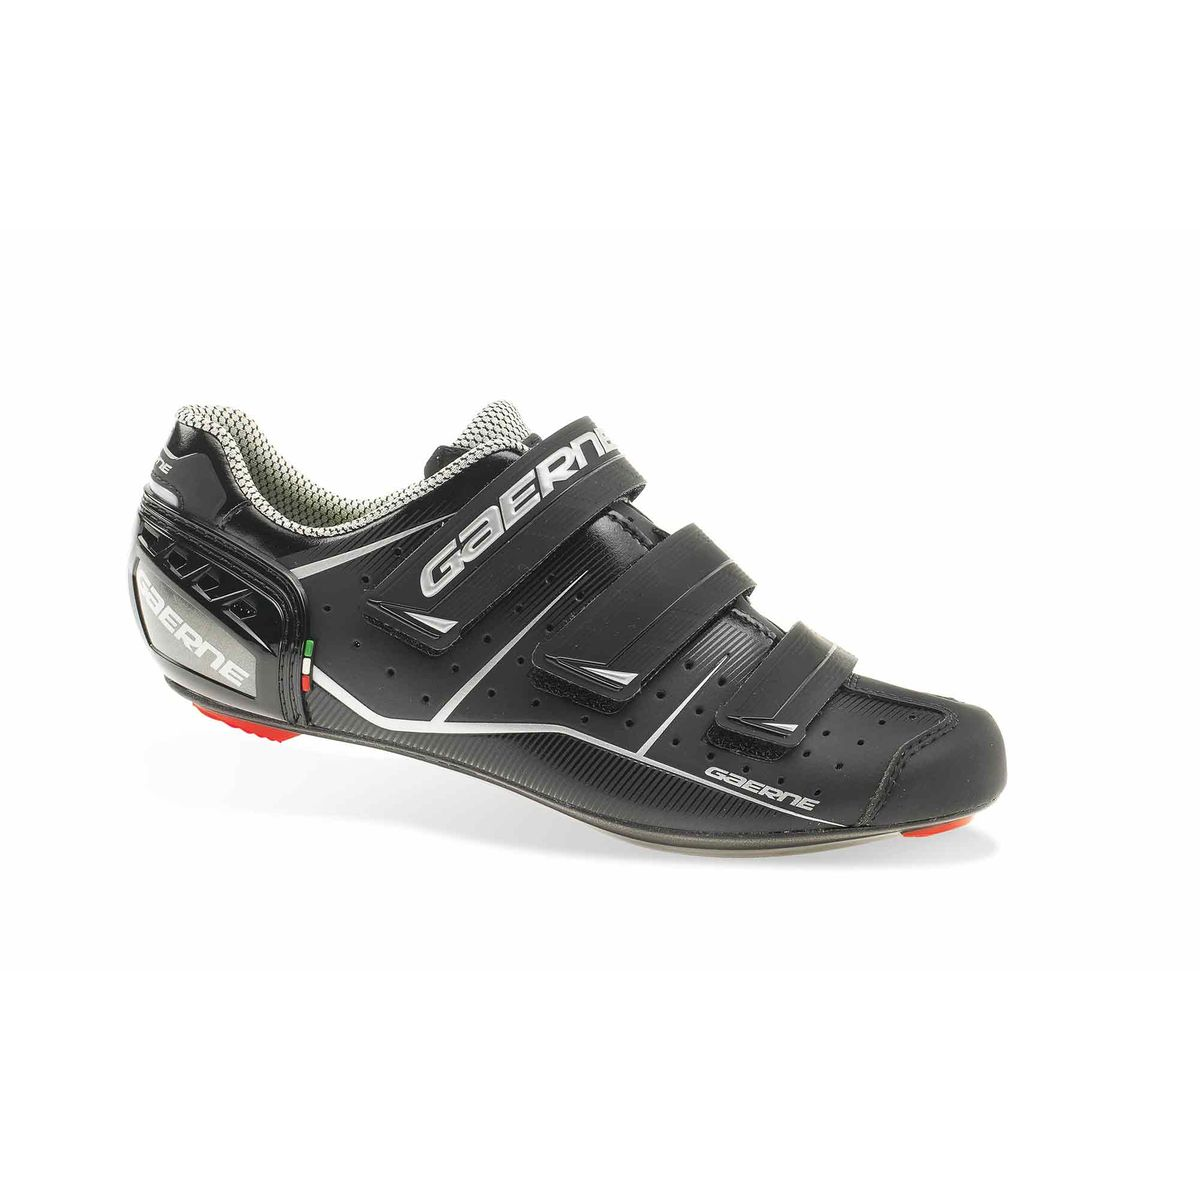 G RECORD LADY women's road shoes